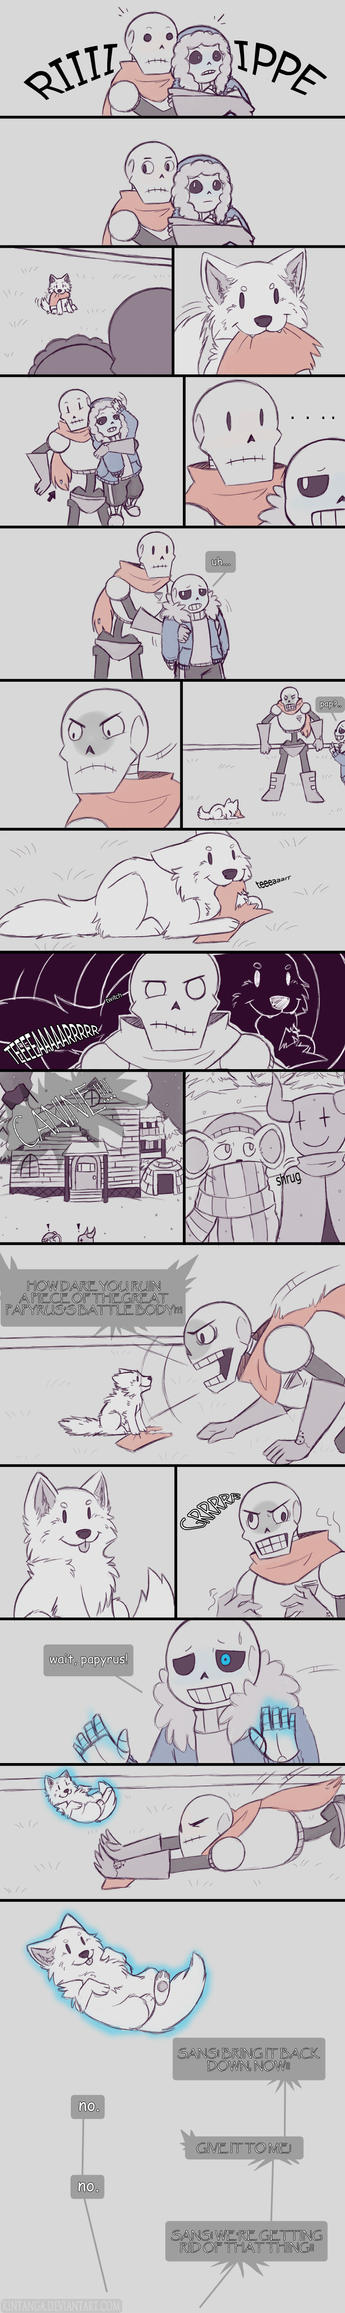 .Undertale Fancomic: Annoying Dog - Page 8.+ by Kintanga